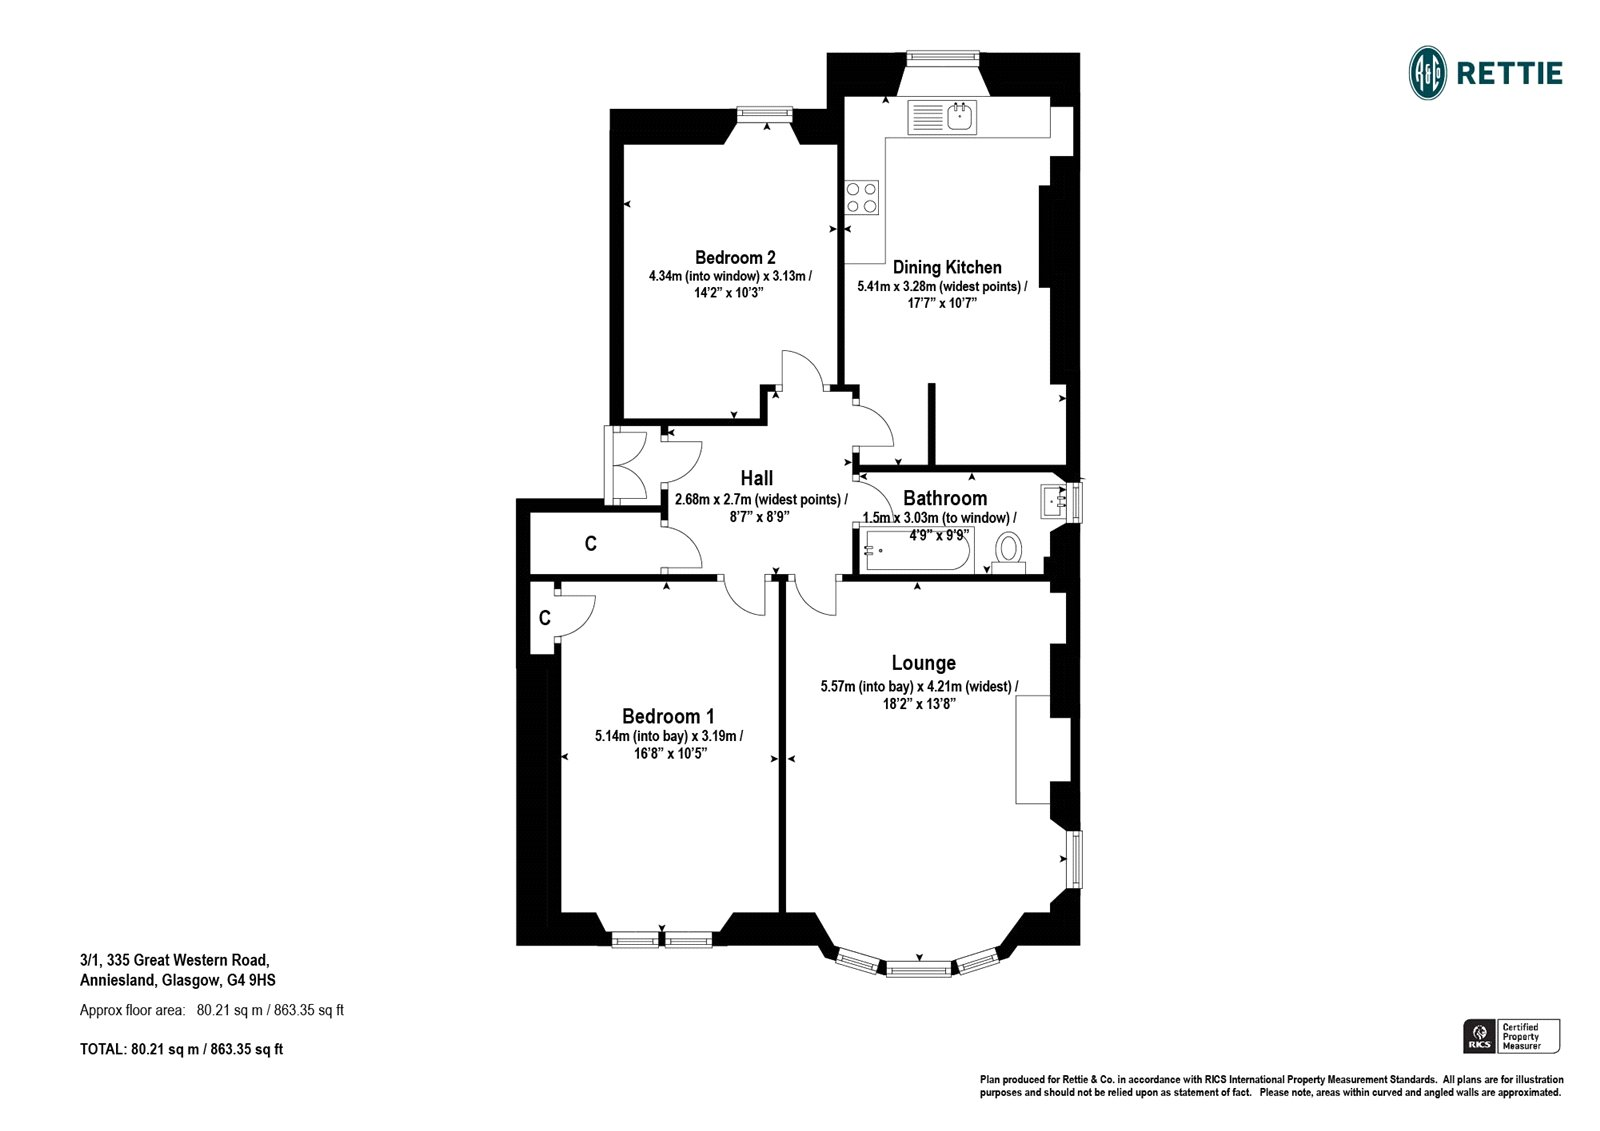 Floorplans for Great Western Road, Woodlands, Glasgow, G4